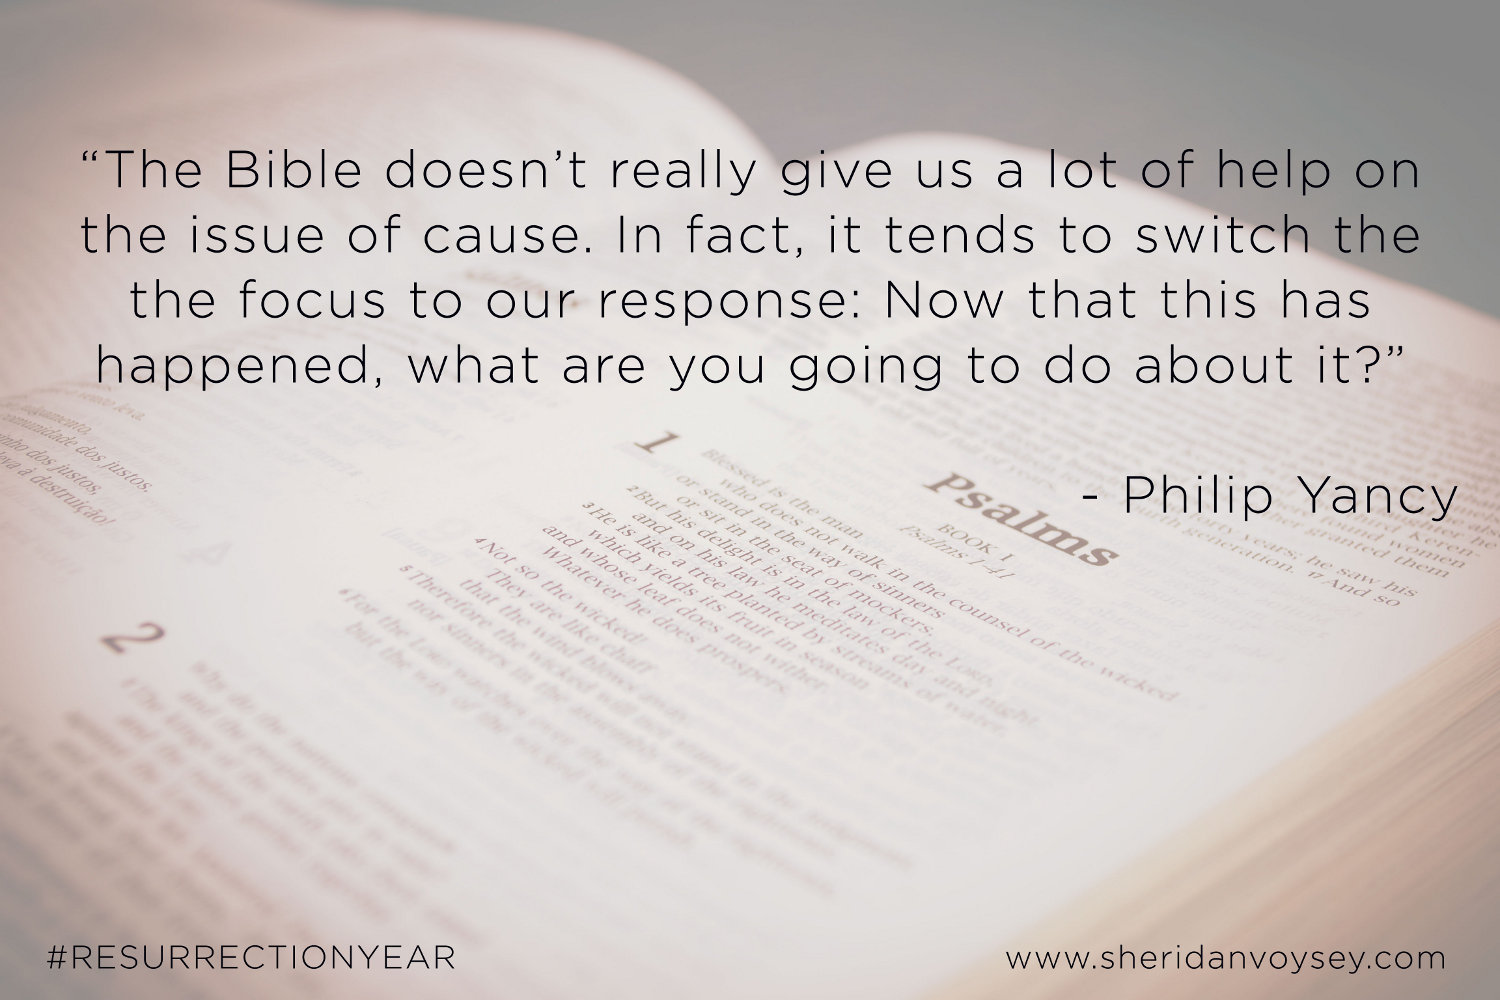 The Bible - Philip Yancey #ResurrectionYear